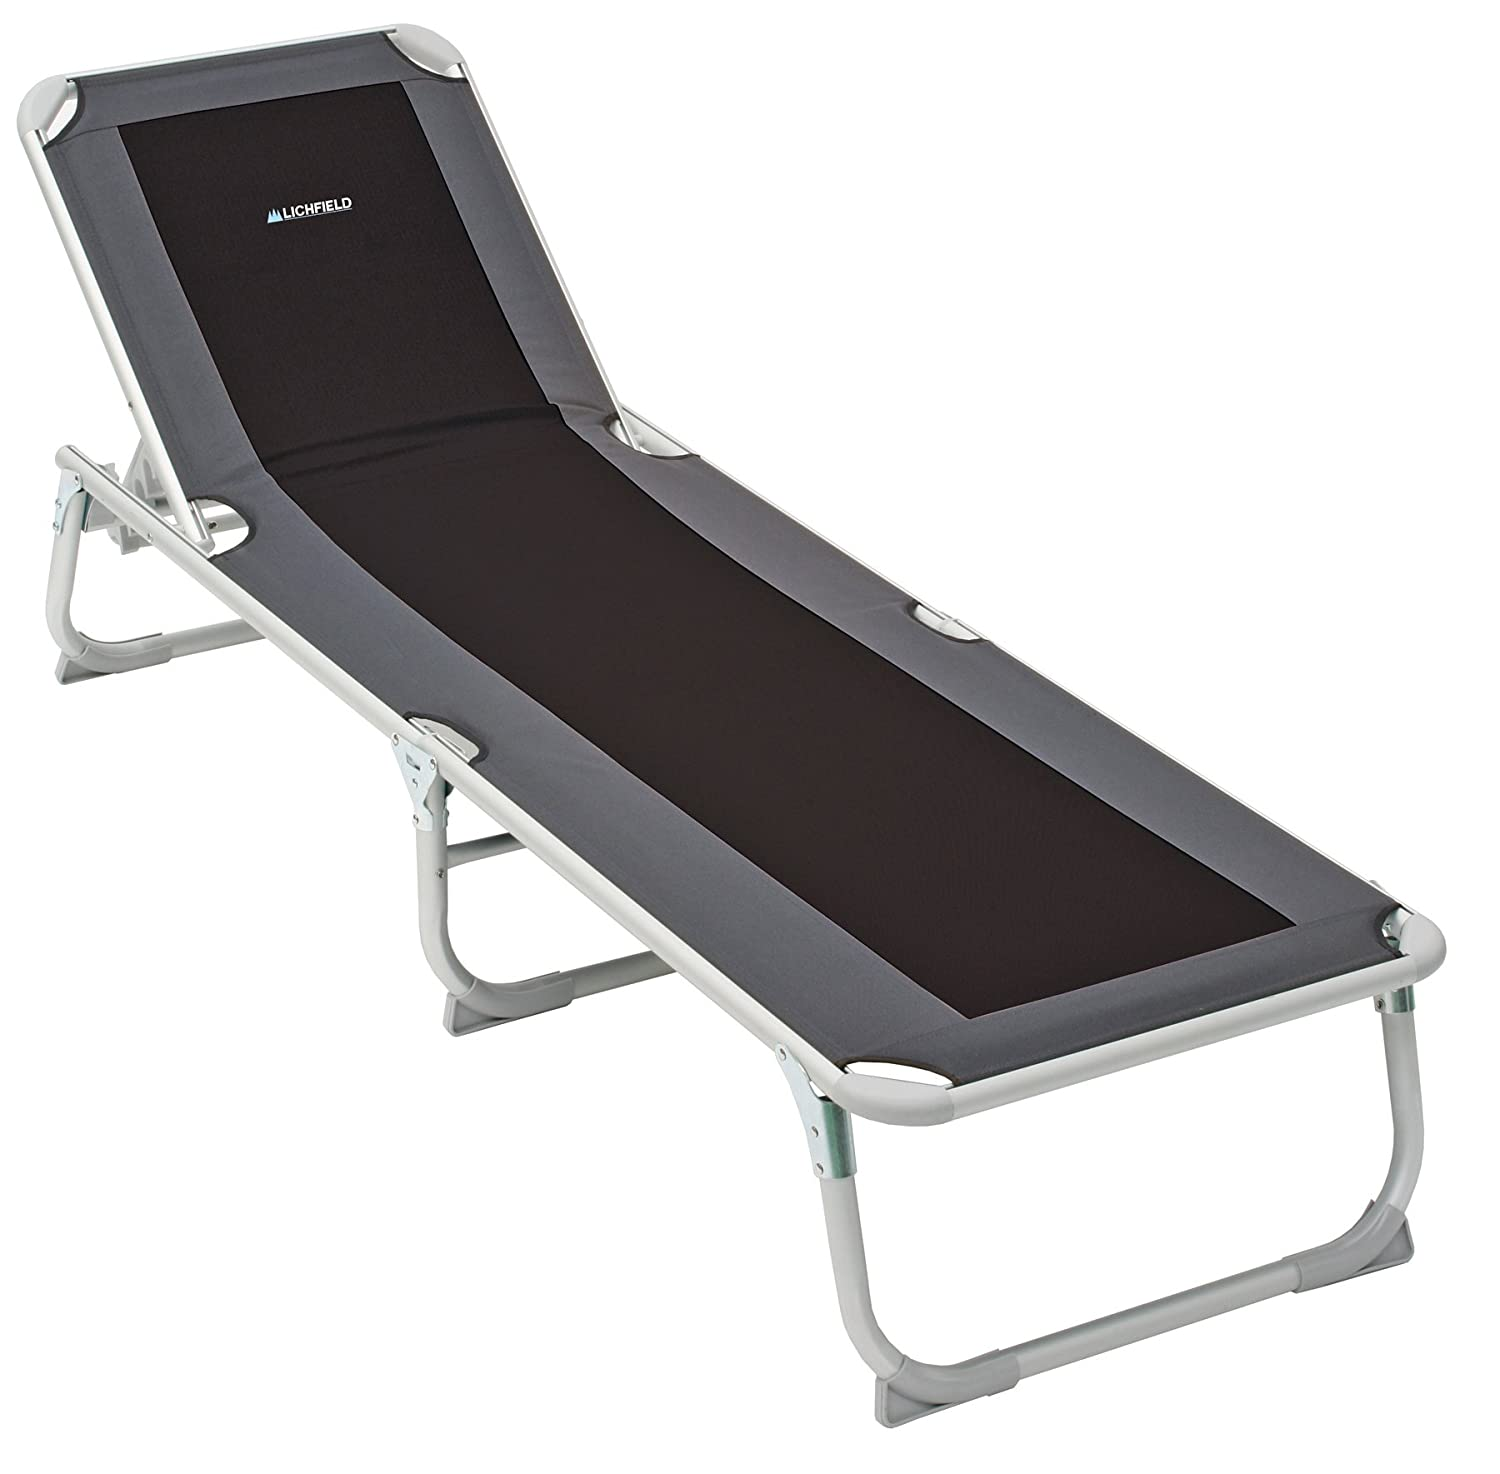 Lichfield Deluxe Camp Sun Lounger. Amazon co uk  Sunloungers   Garden Furniture   Accessories  Garden